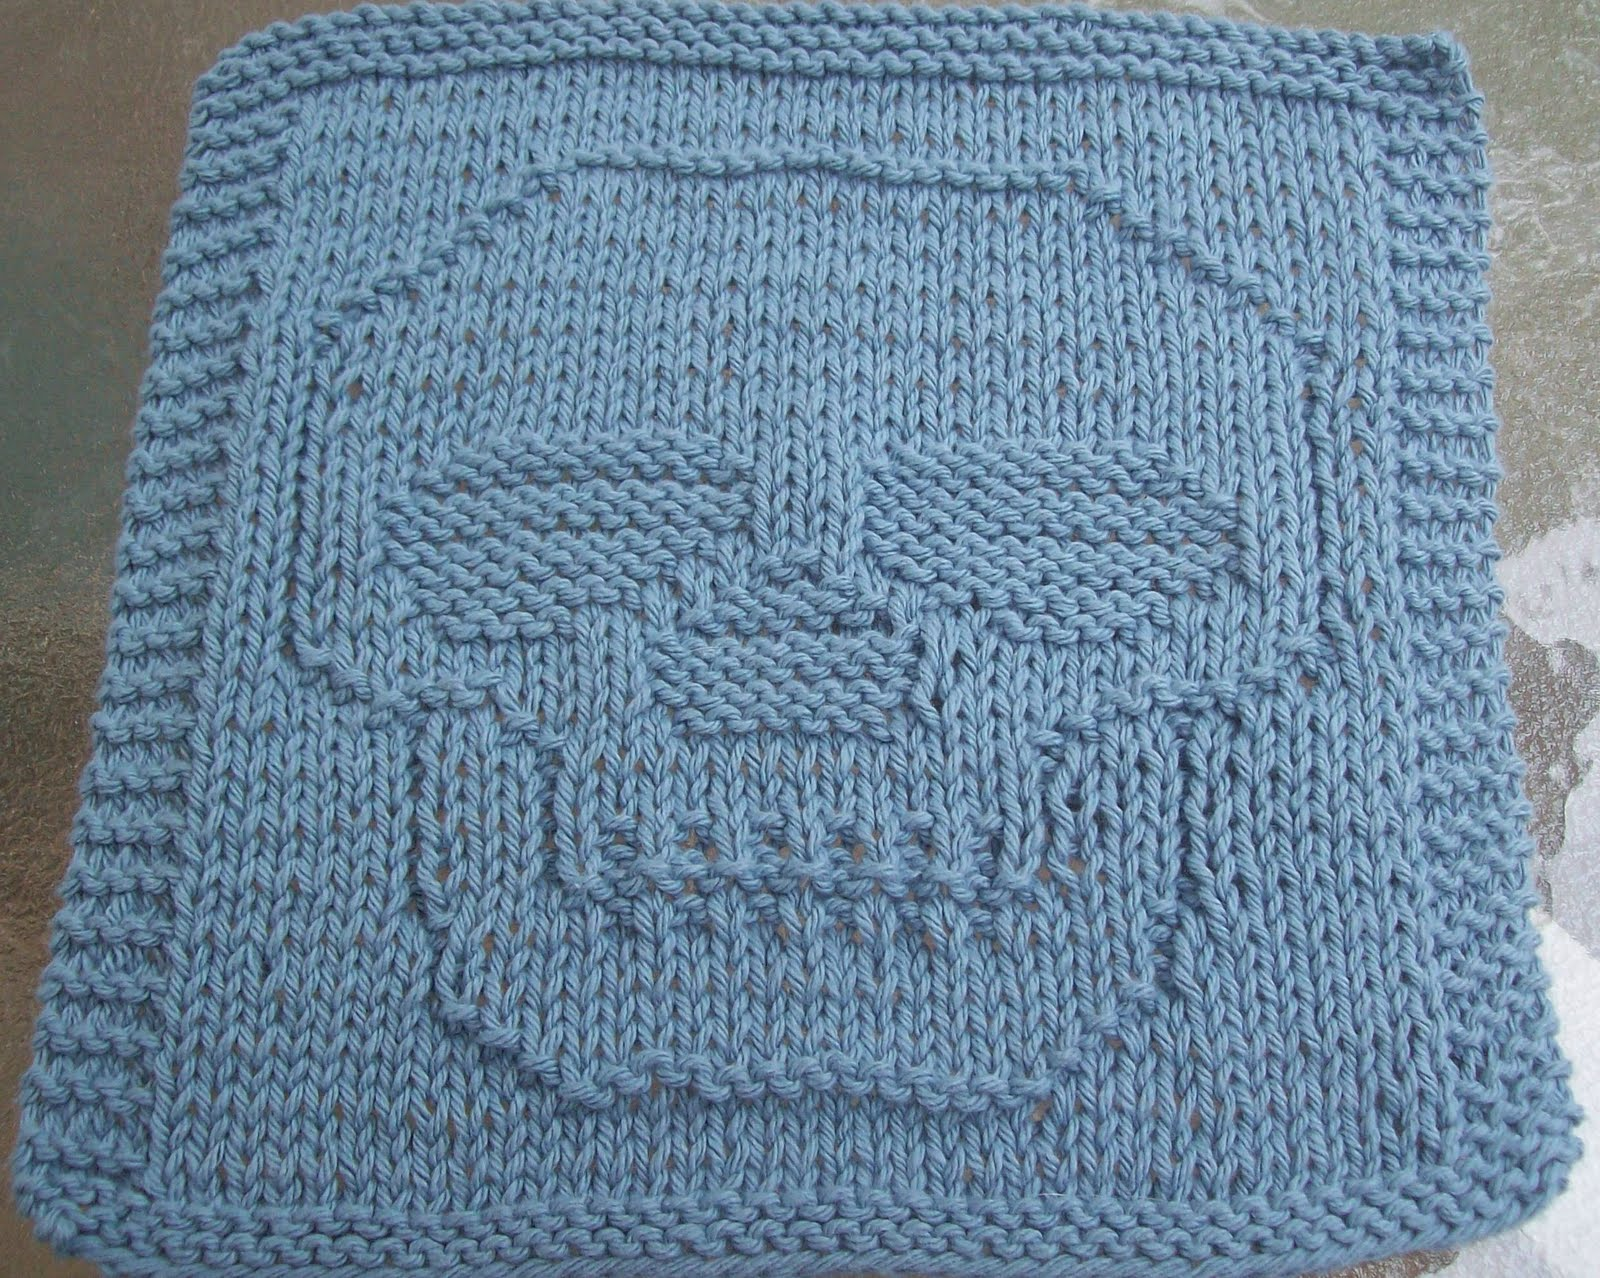 Knitted Dishcloth Patterns : DigKnitty Designs: Just a Skull Knit Dishcloth Pattern